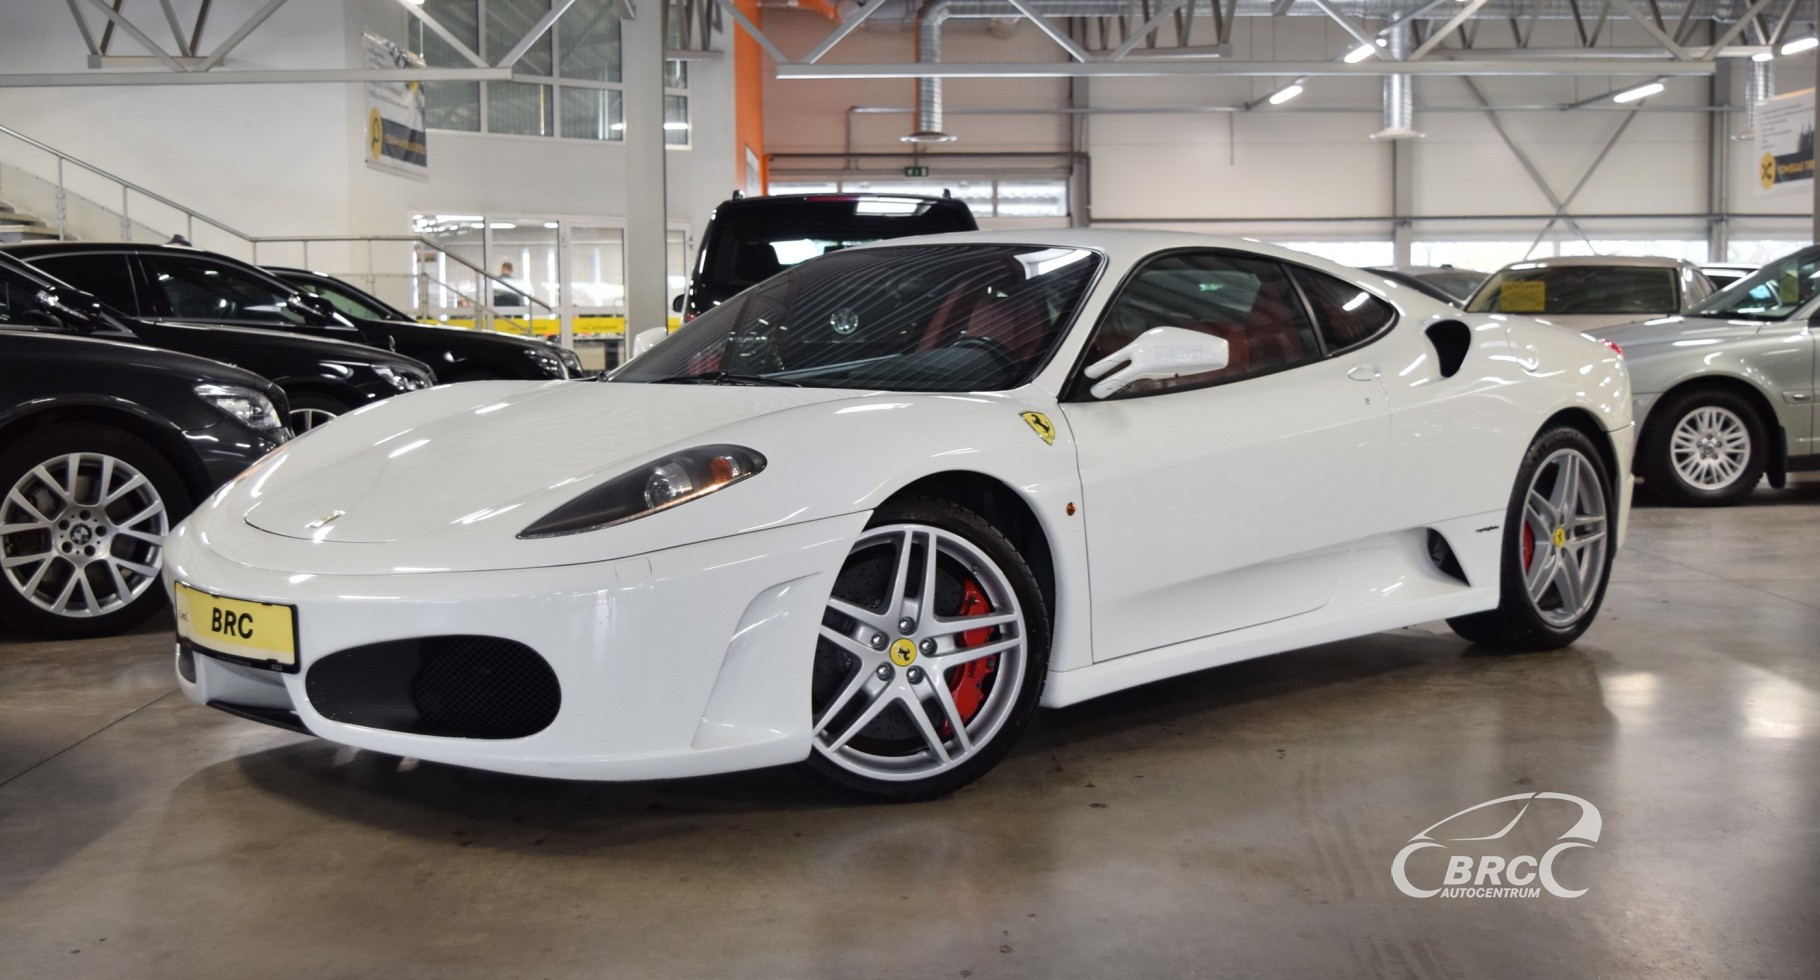 Ferrari F430 Ceramic Carbon